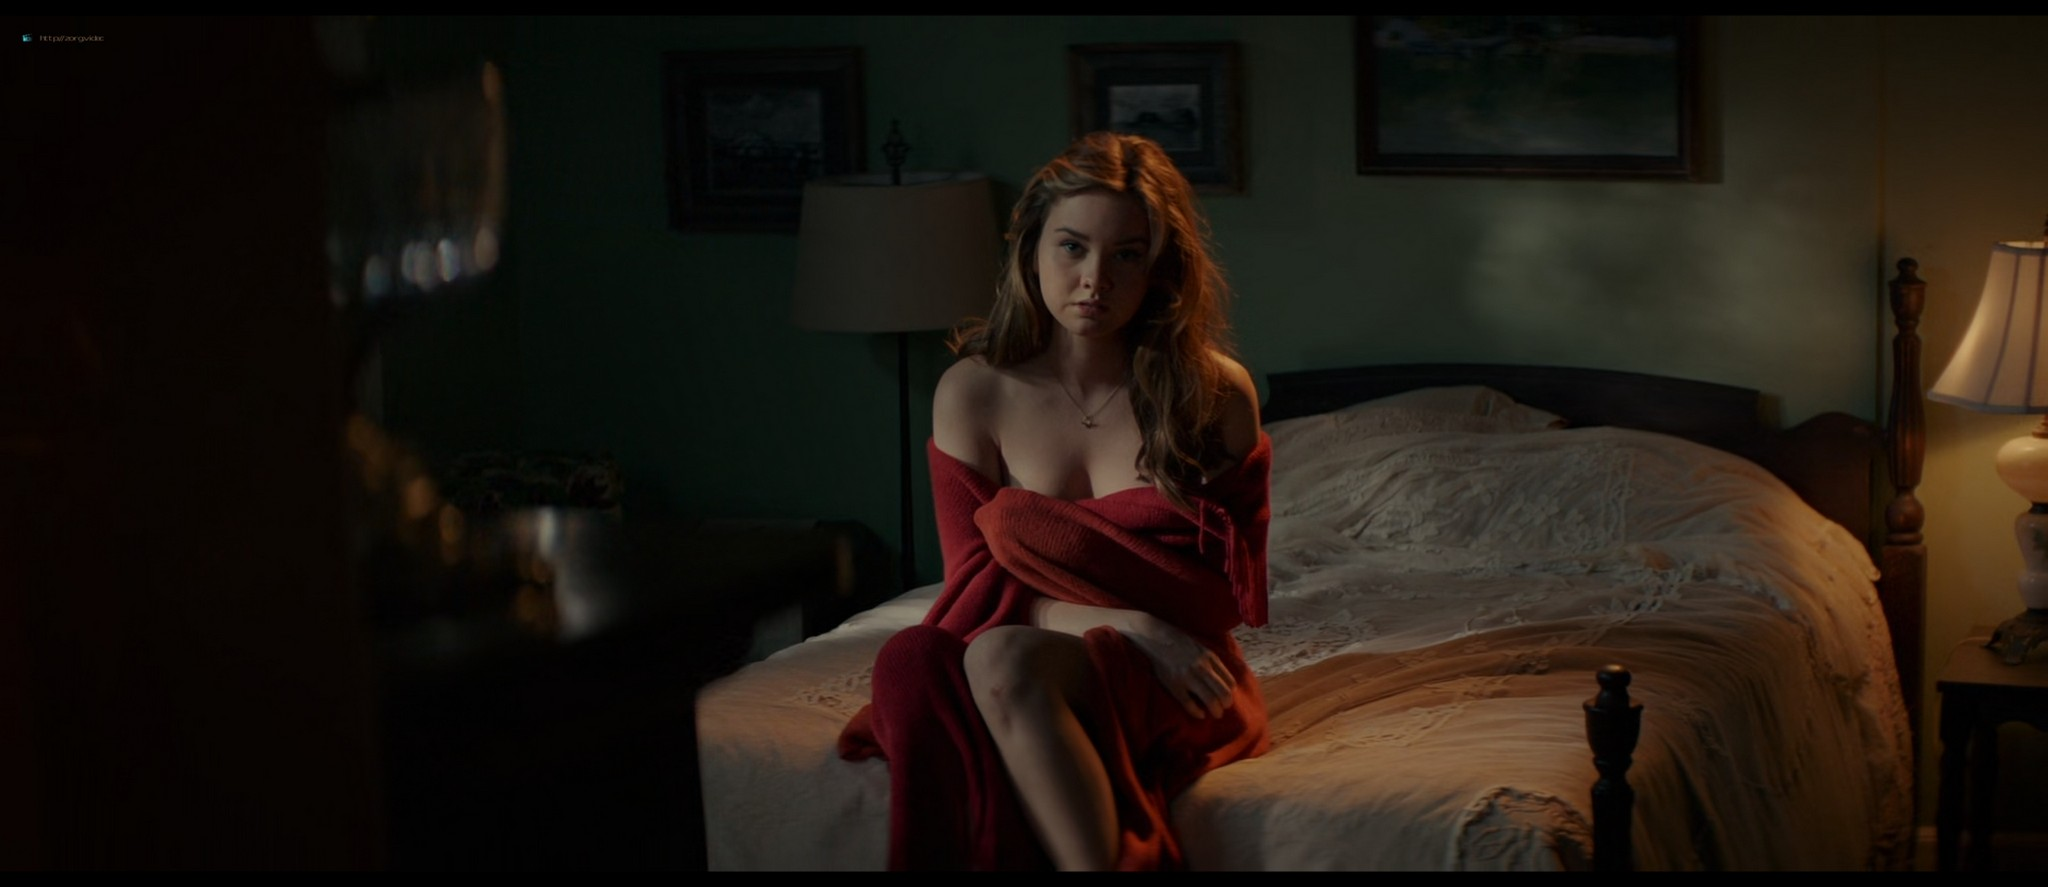 Michelle Monaghan hot see-through and Liana Liberato hot mild sex - The Best of Me (2014) HD 1080p BluRay (12)